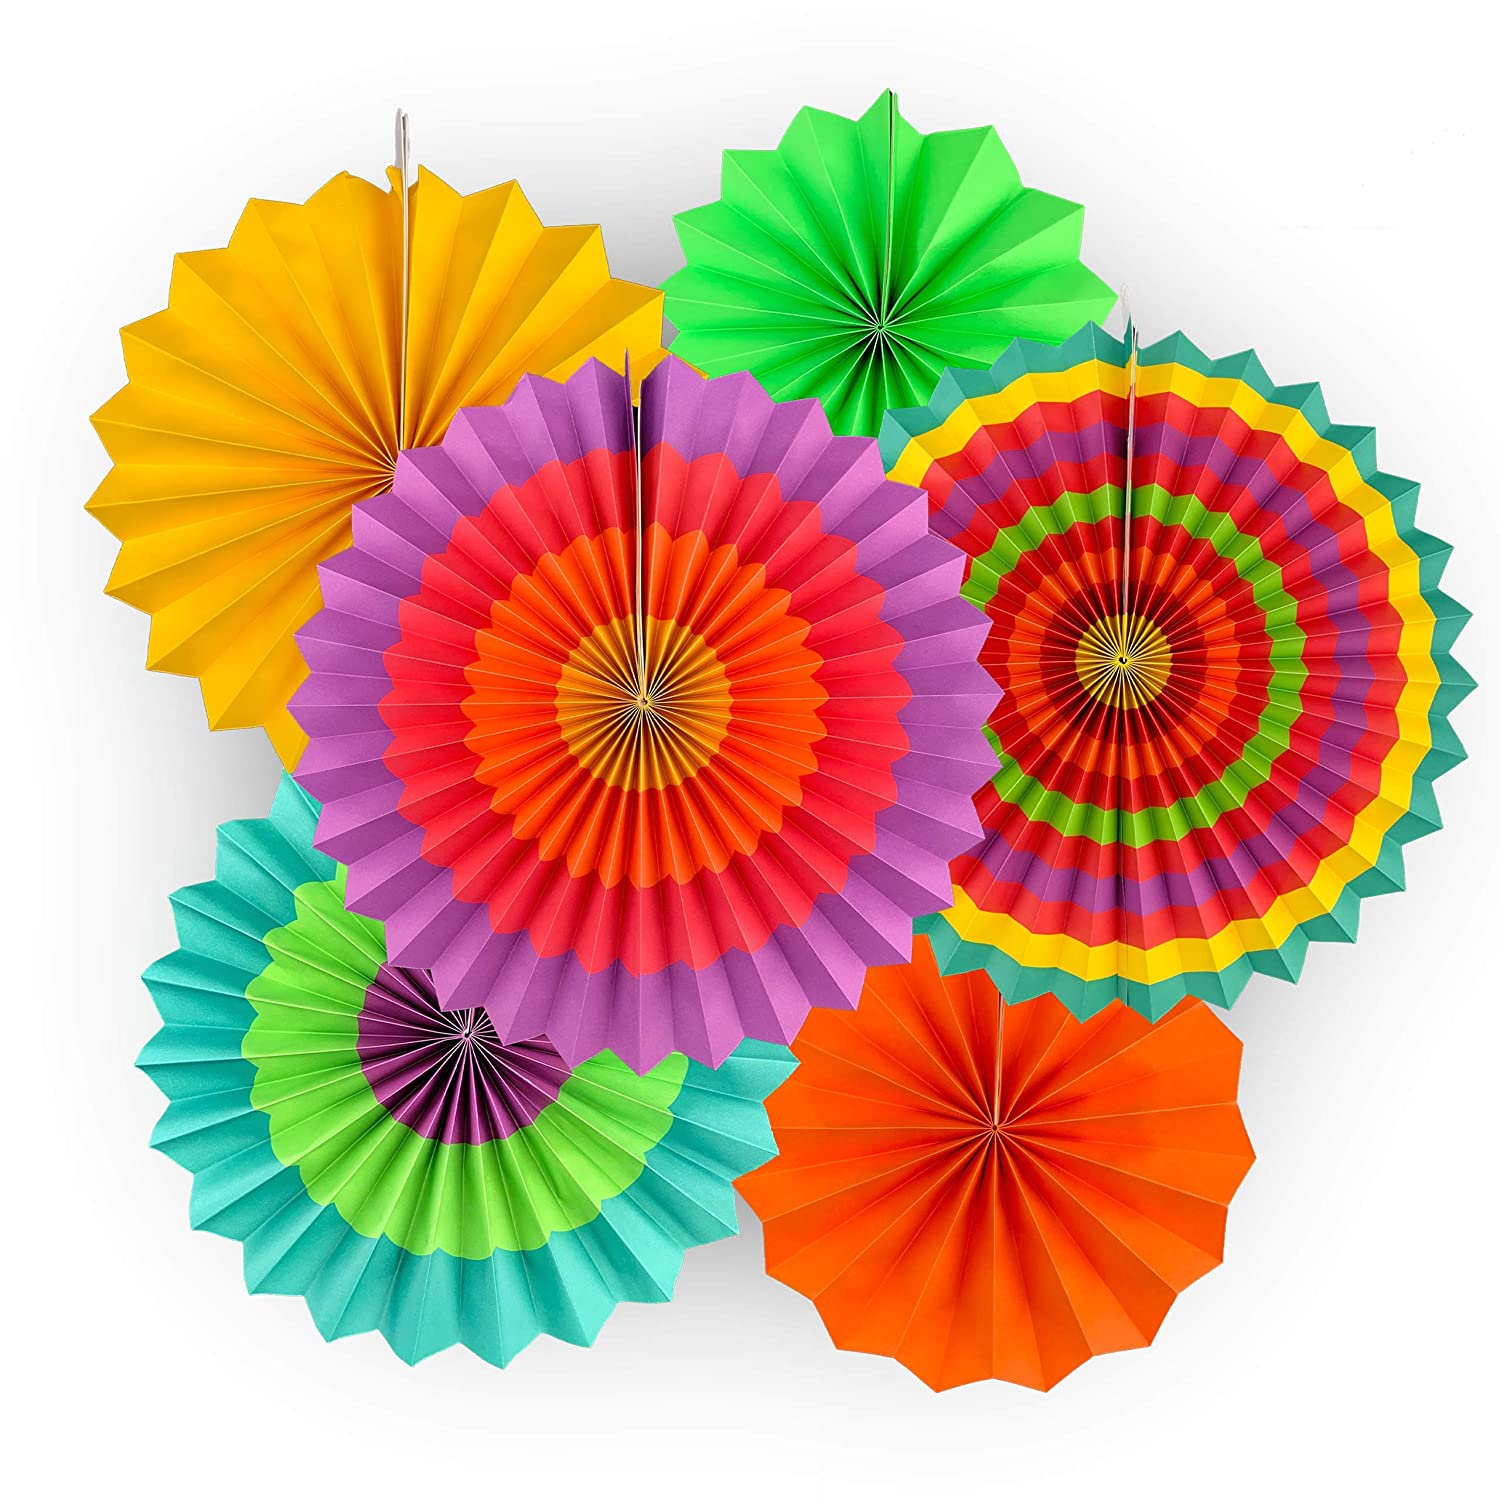 "Adorox Set of 12 Vibrant Bright Colors Hanging Paper Fans Cinco De Mayo Mexican fiesta Southwestern Rosettes Party Decoration for Holidays 8"" 12"" 16"" Various Sizes Fiesta (2 pack)"